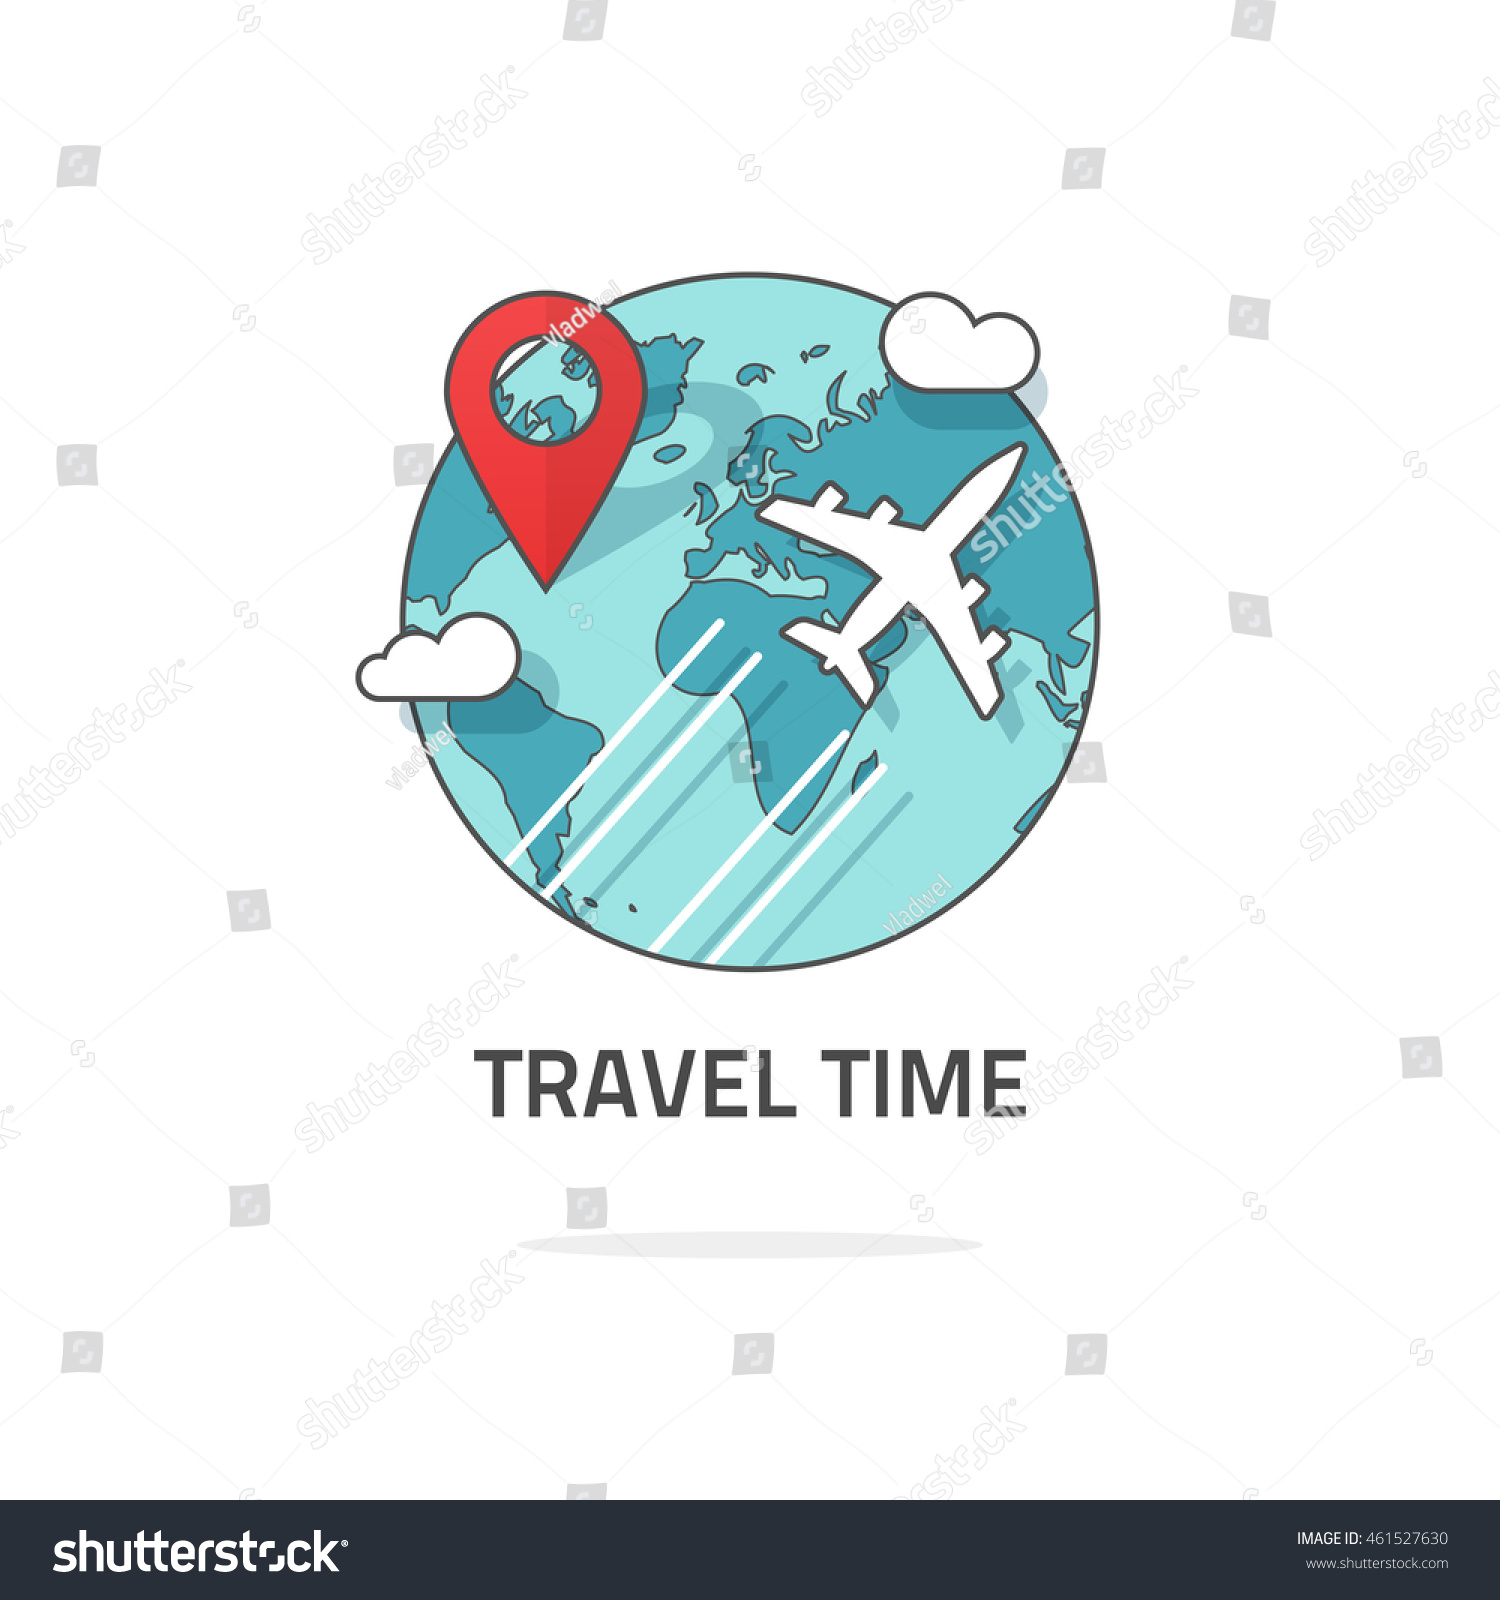 Travelling Around World By Plane Concept Stock Vector ...